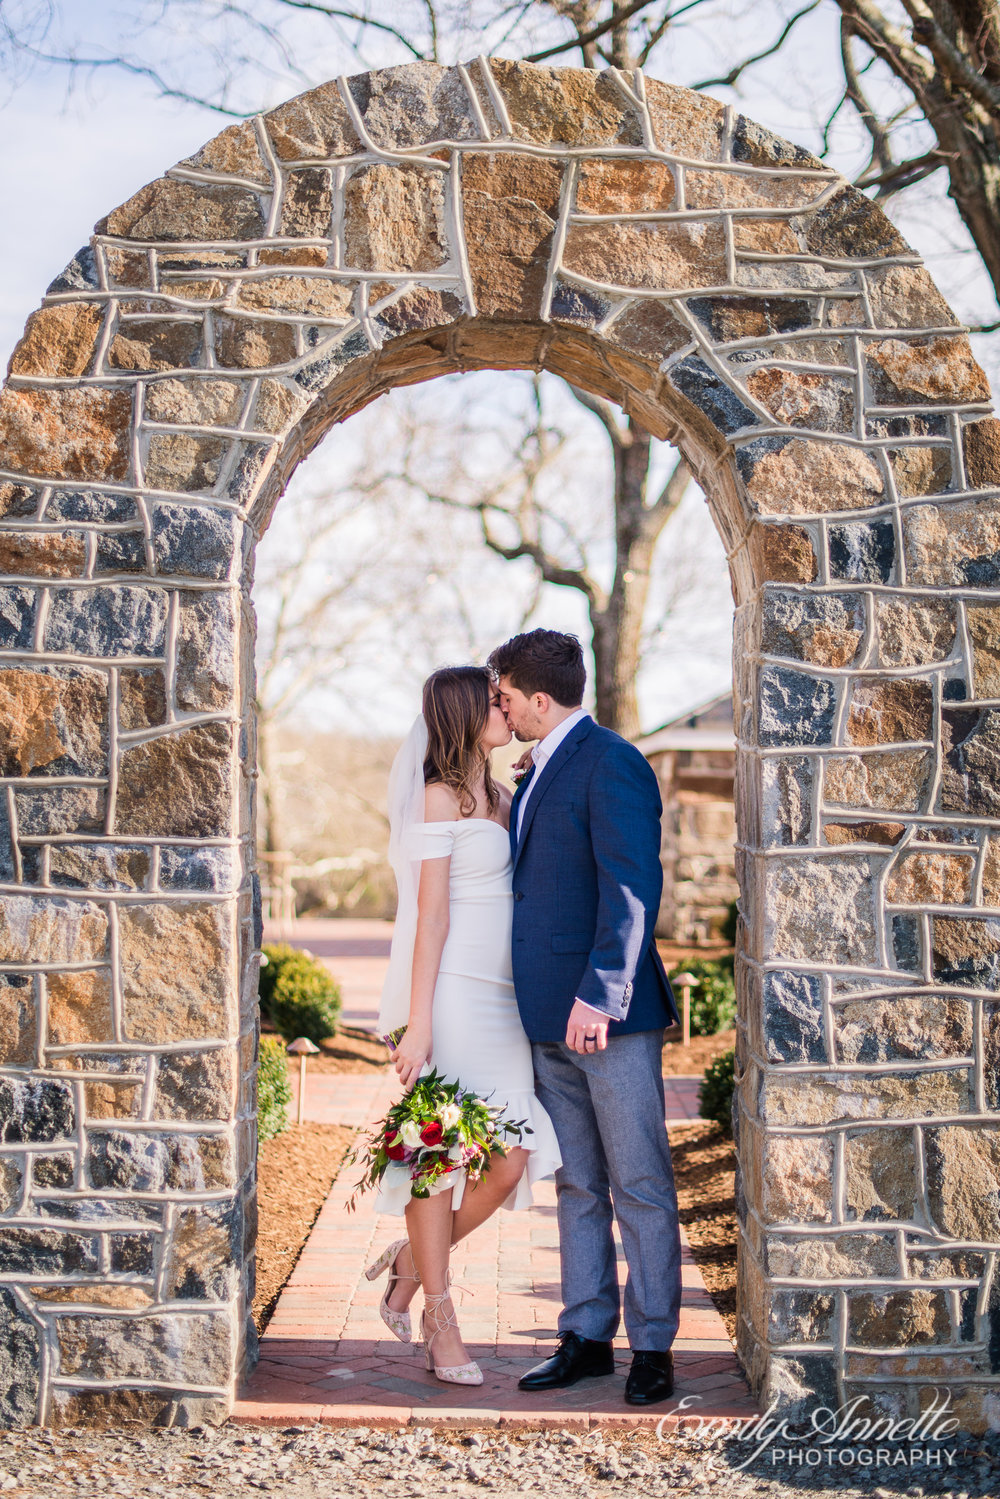 A bride and groom share a kiss while under a stone arch on their wedding day at Fleetwood Farm Winery in Leesburg, Virginia